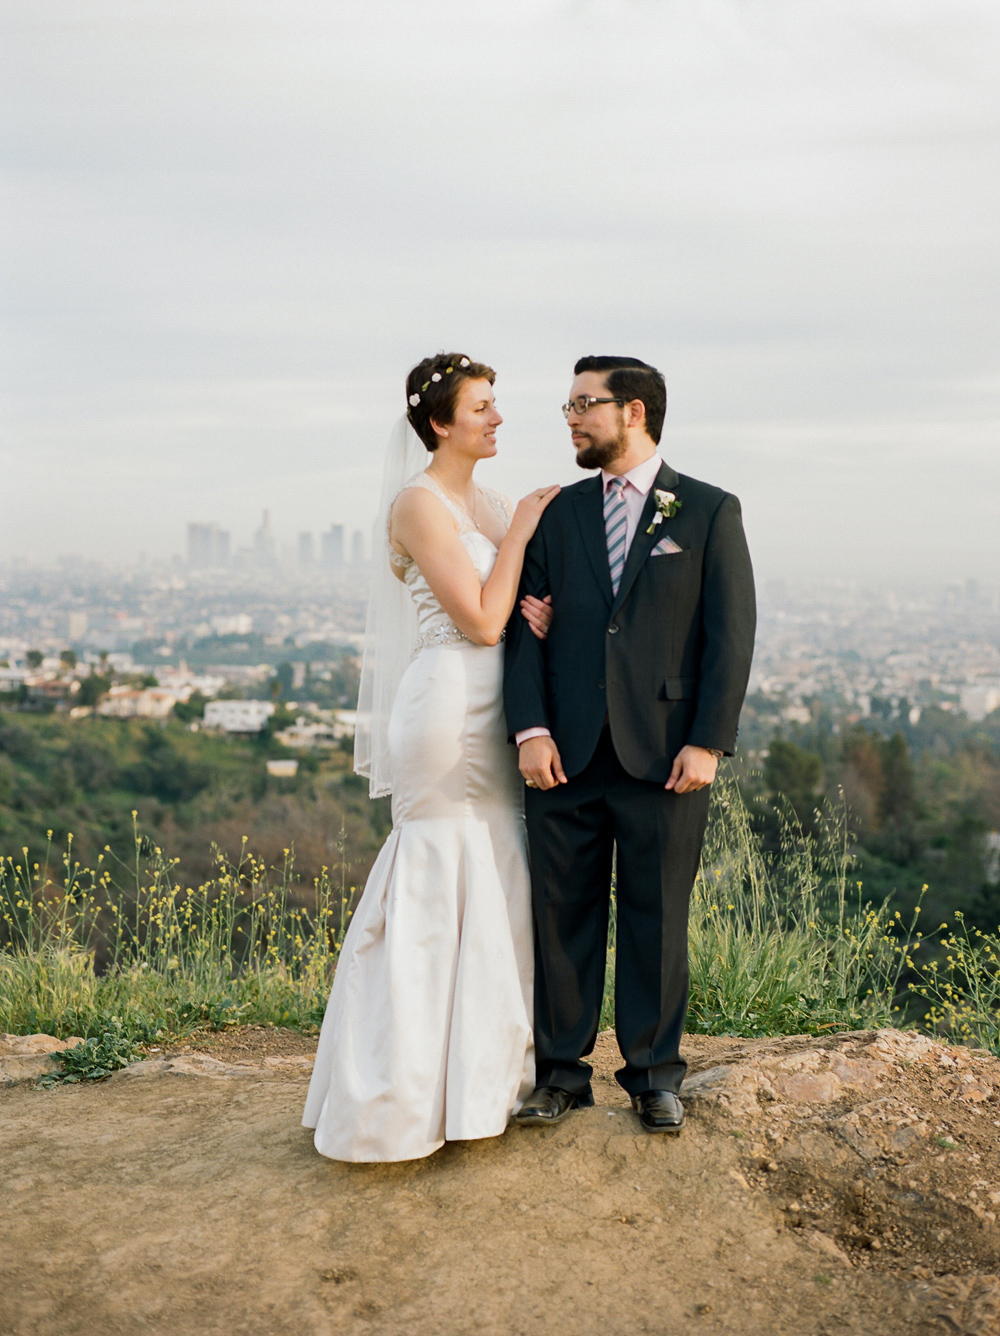 California outdoor elopement photographer - bride and groom portraits on film at Griffith Park